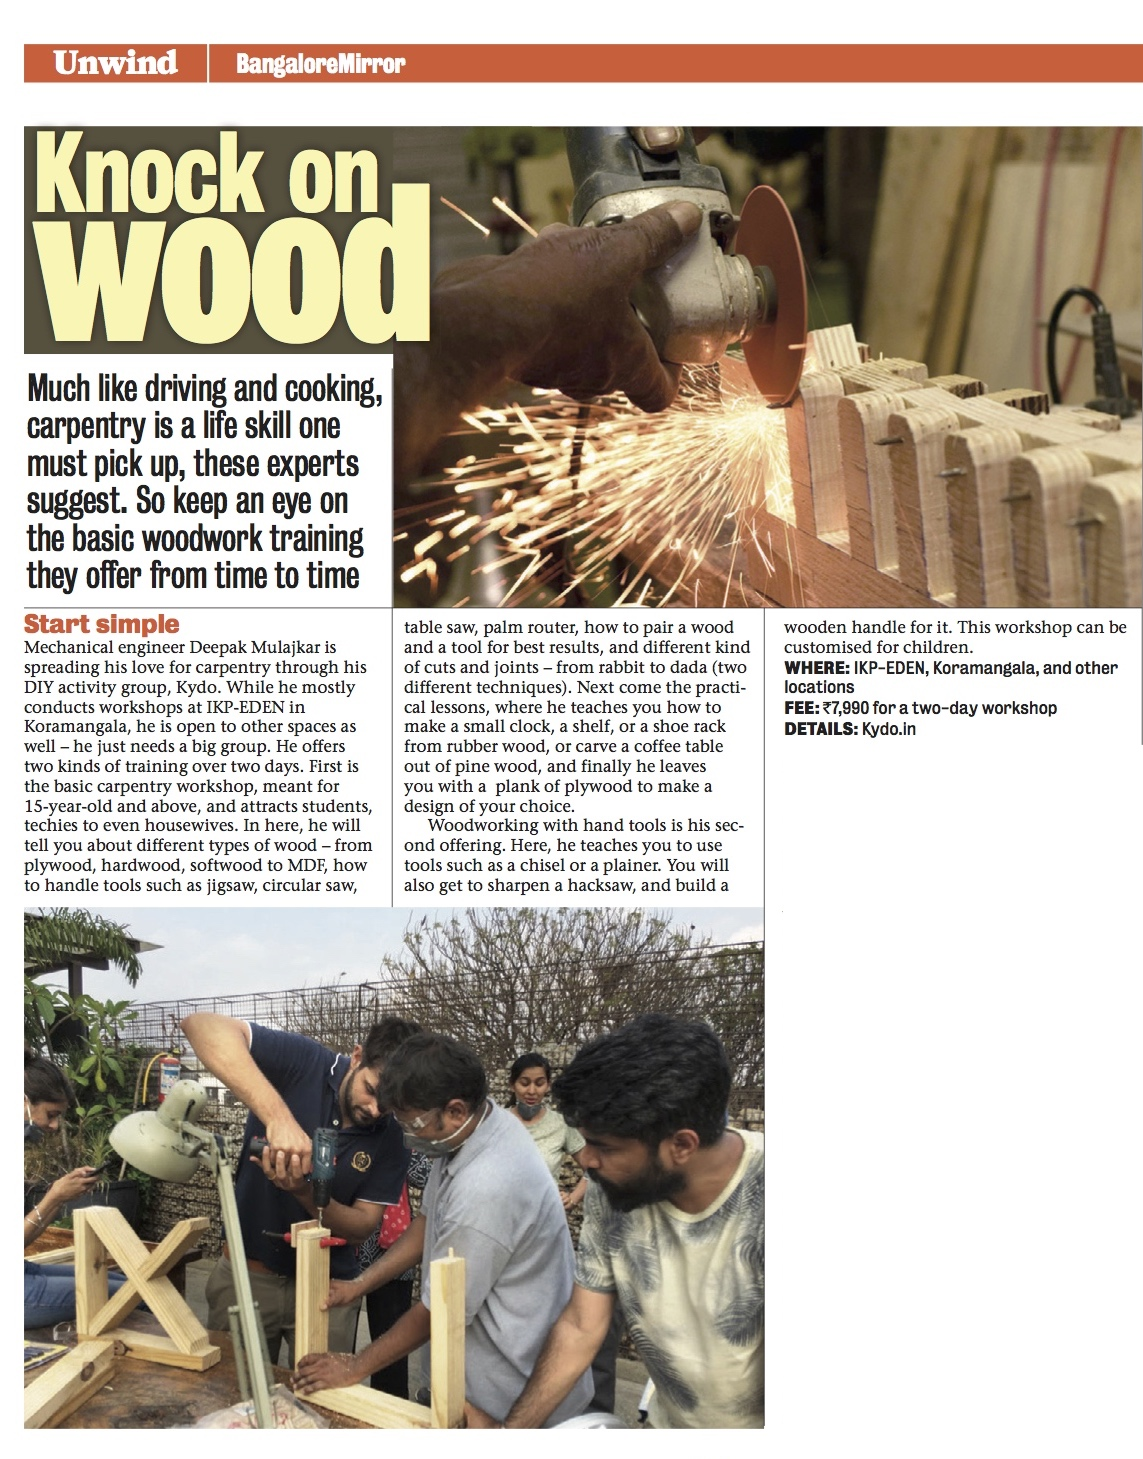 kydo - learn woodworking